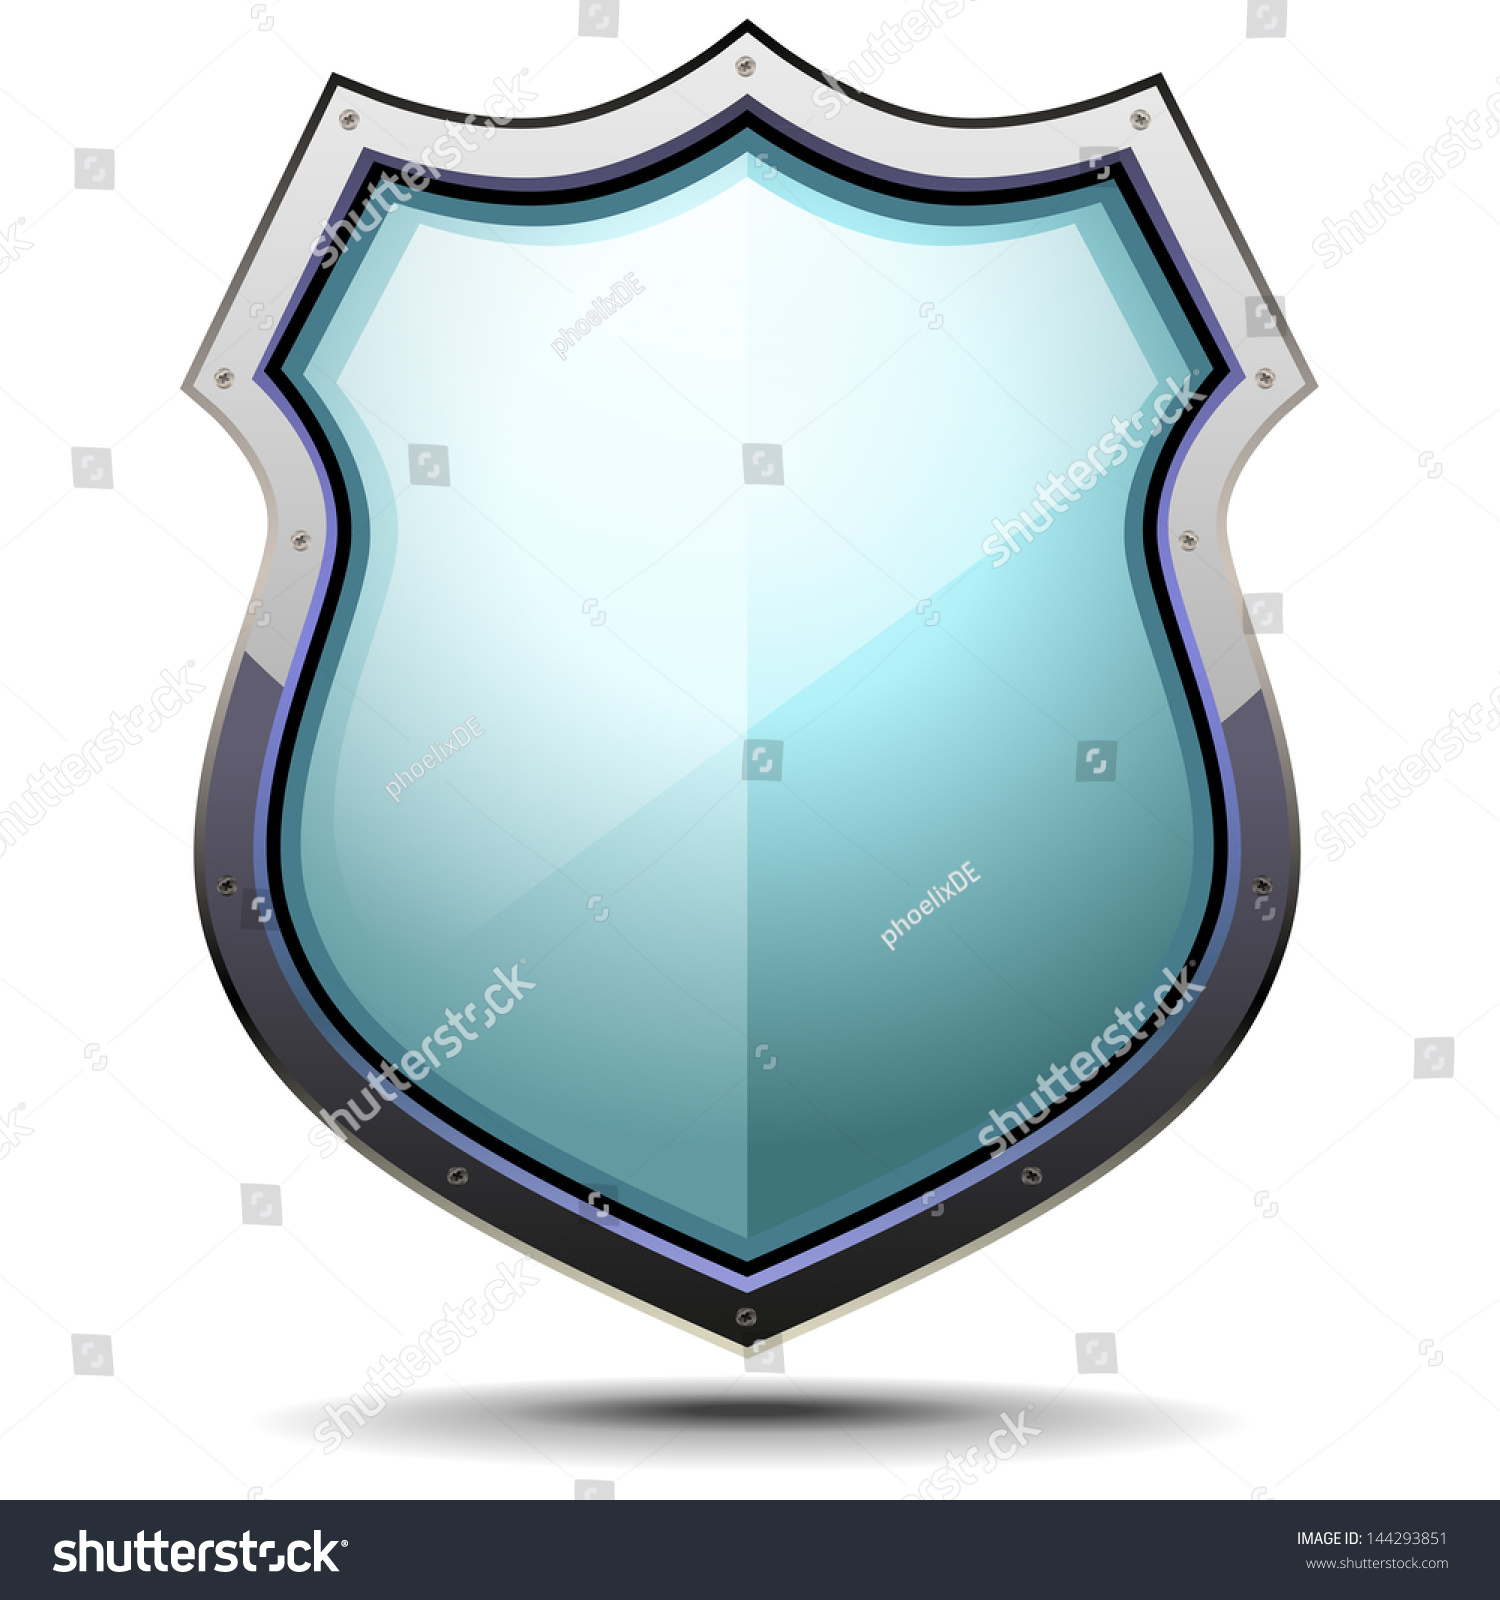 Detailed Illustration Coat Arms Symbol Security Stock Vector